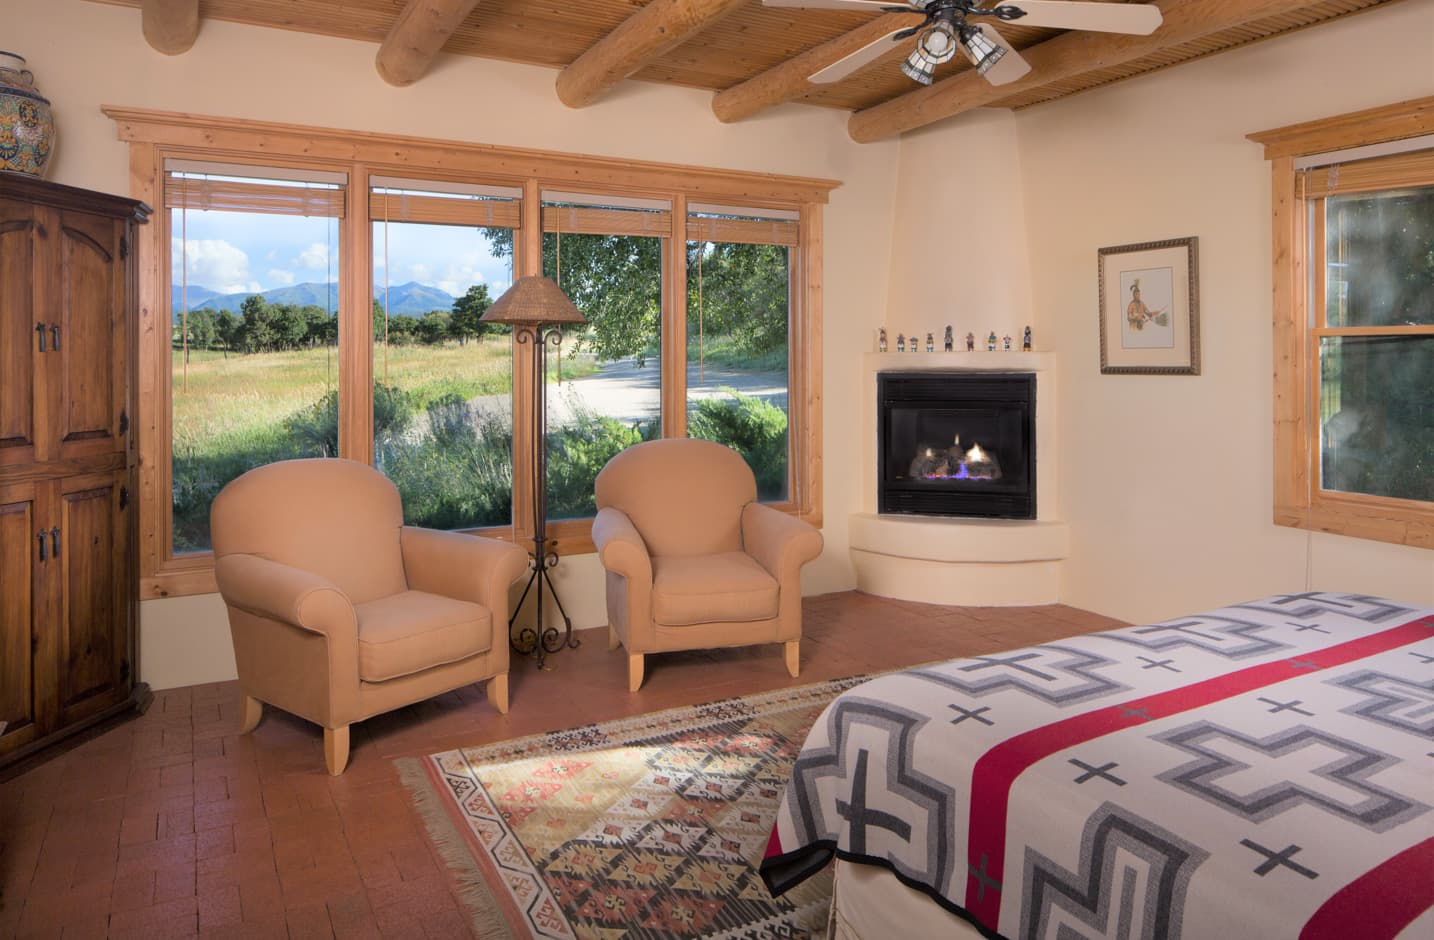 Bedroom with a gas fireplace in the corner and two chairs